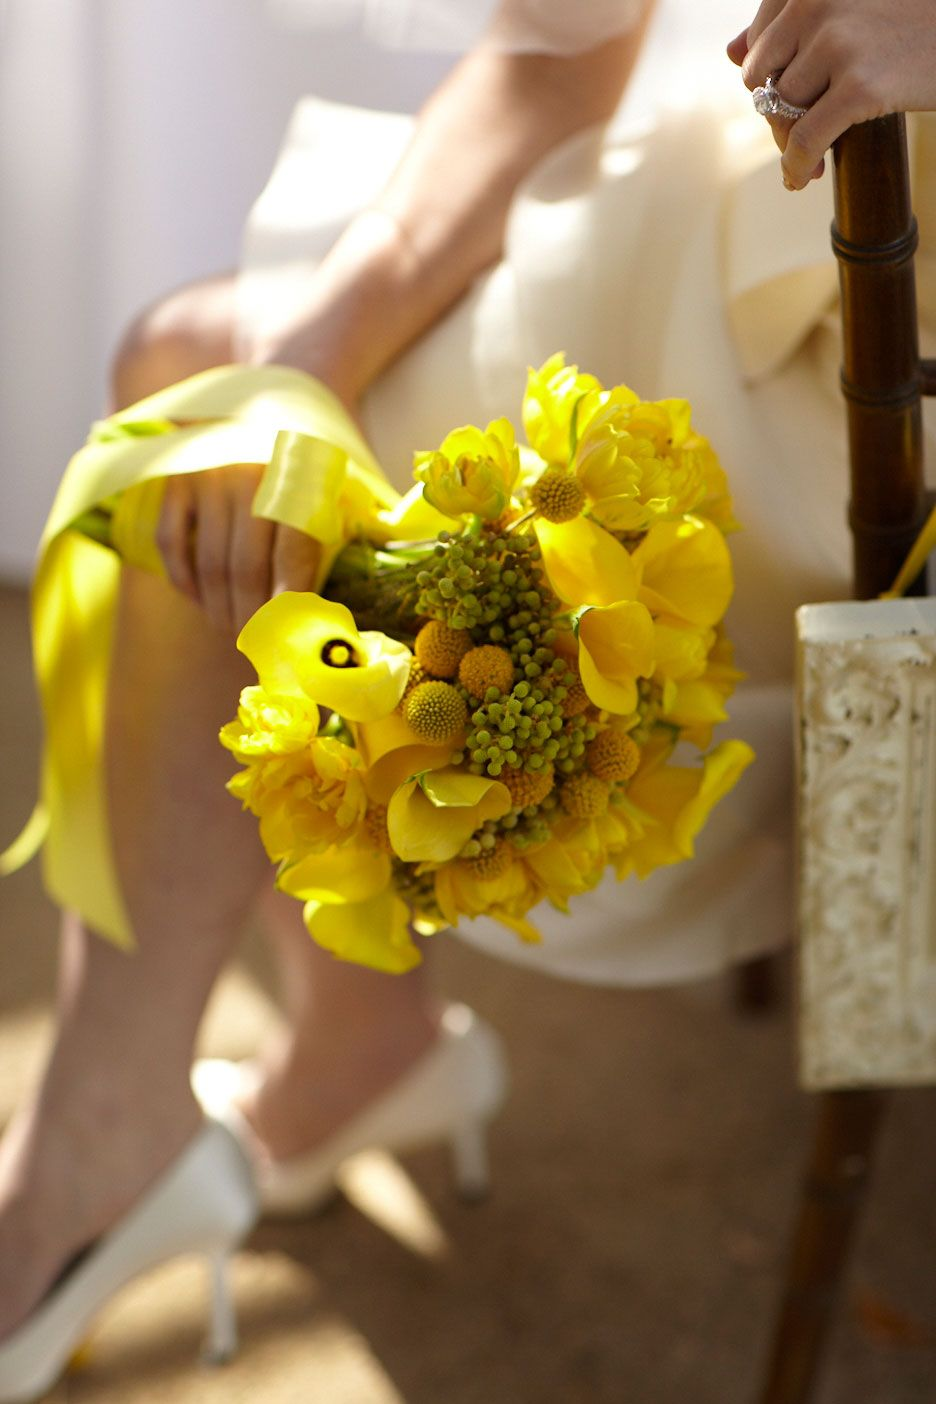 Wedding decorations yellow and gray  Say ucI doud to a lush bouquet of canary yellow flowers  Beautiful